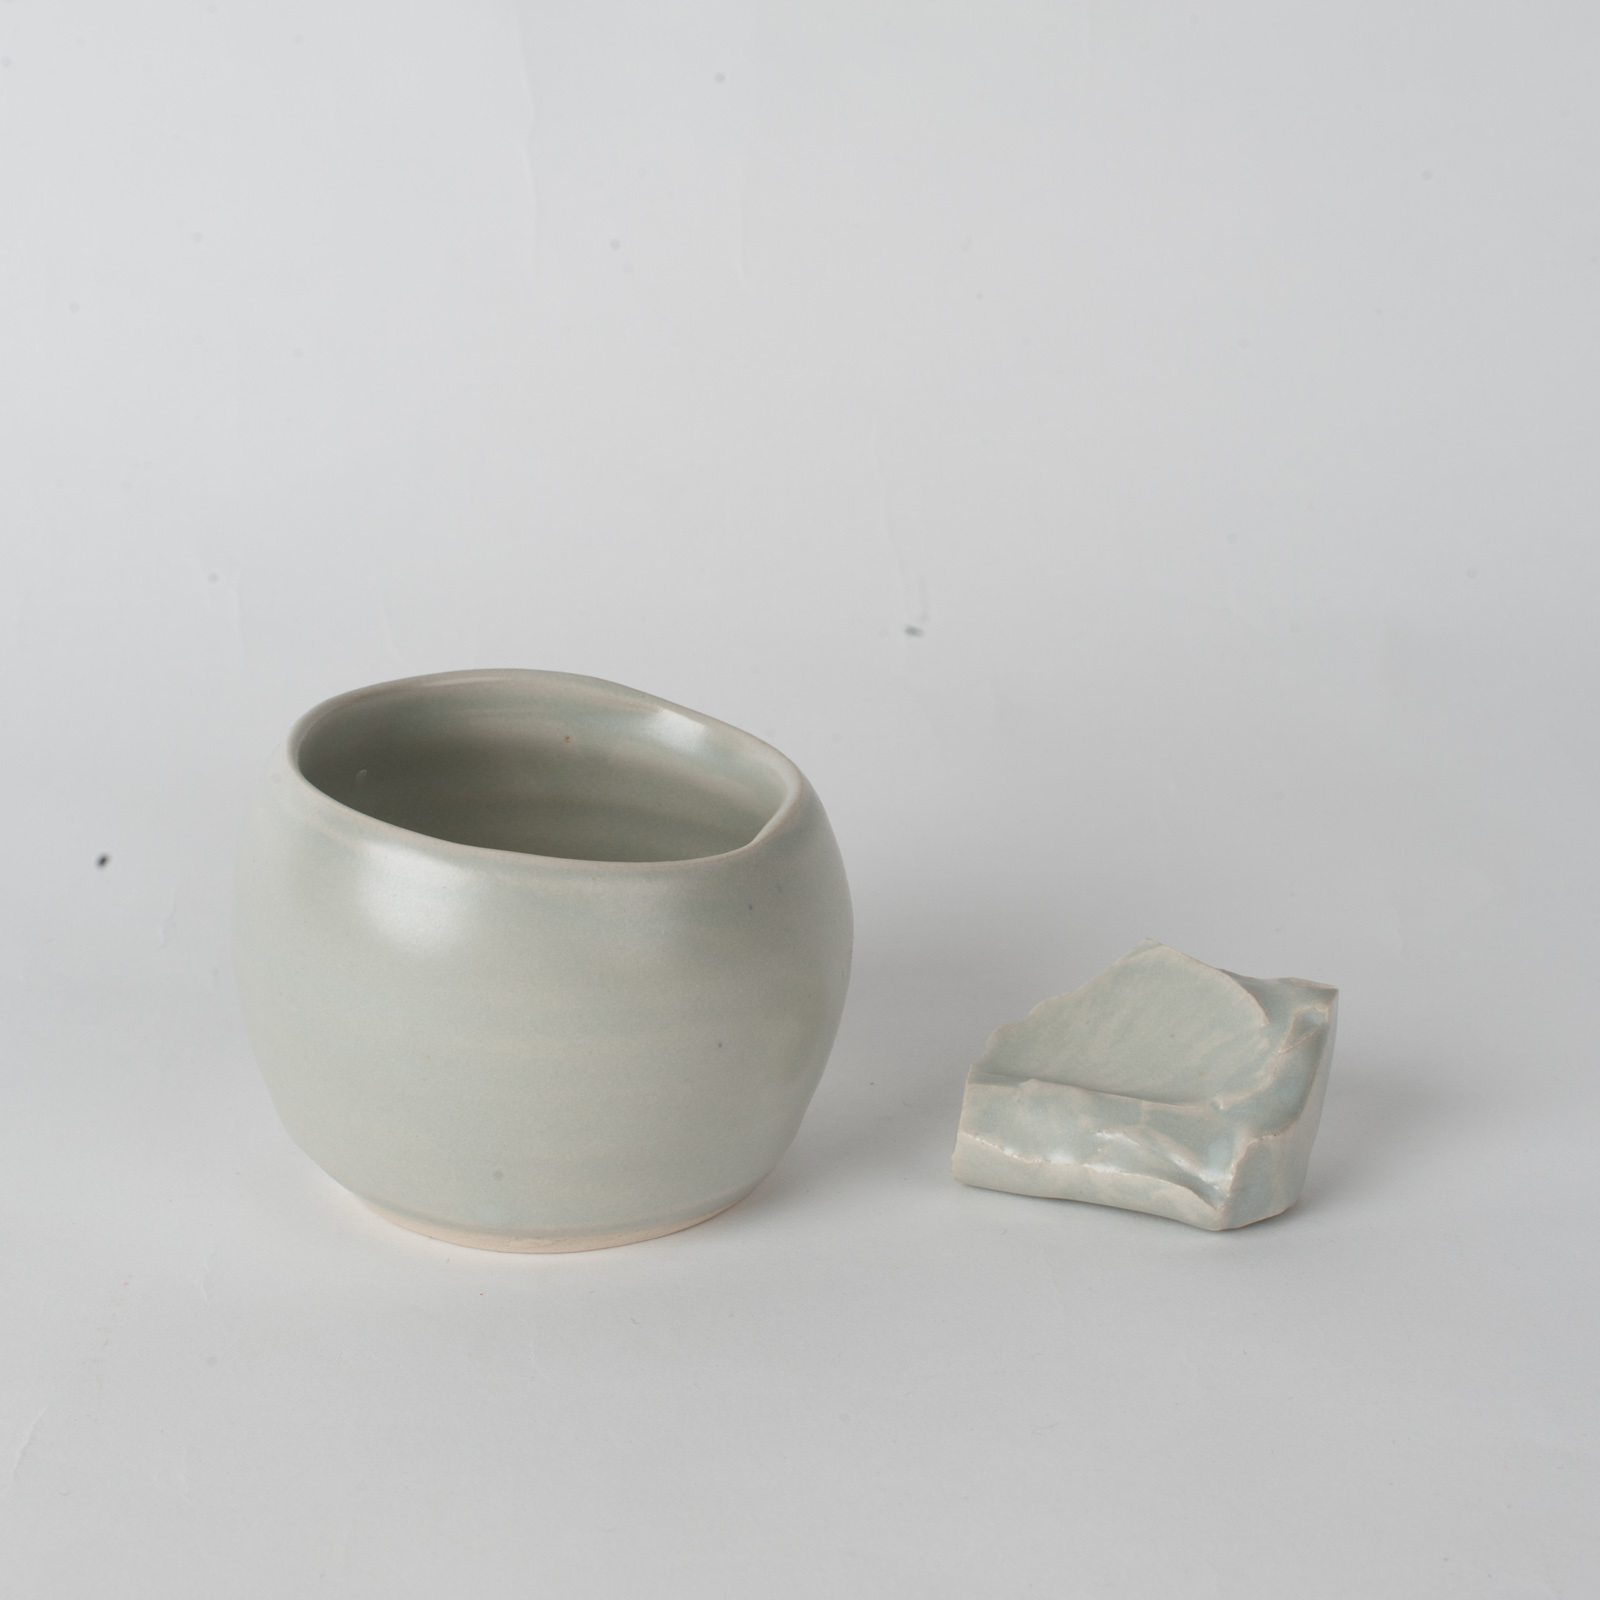 Whiskey Cup In Stone Ceramic By James Lemon 06